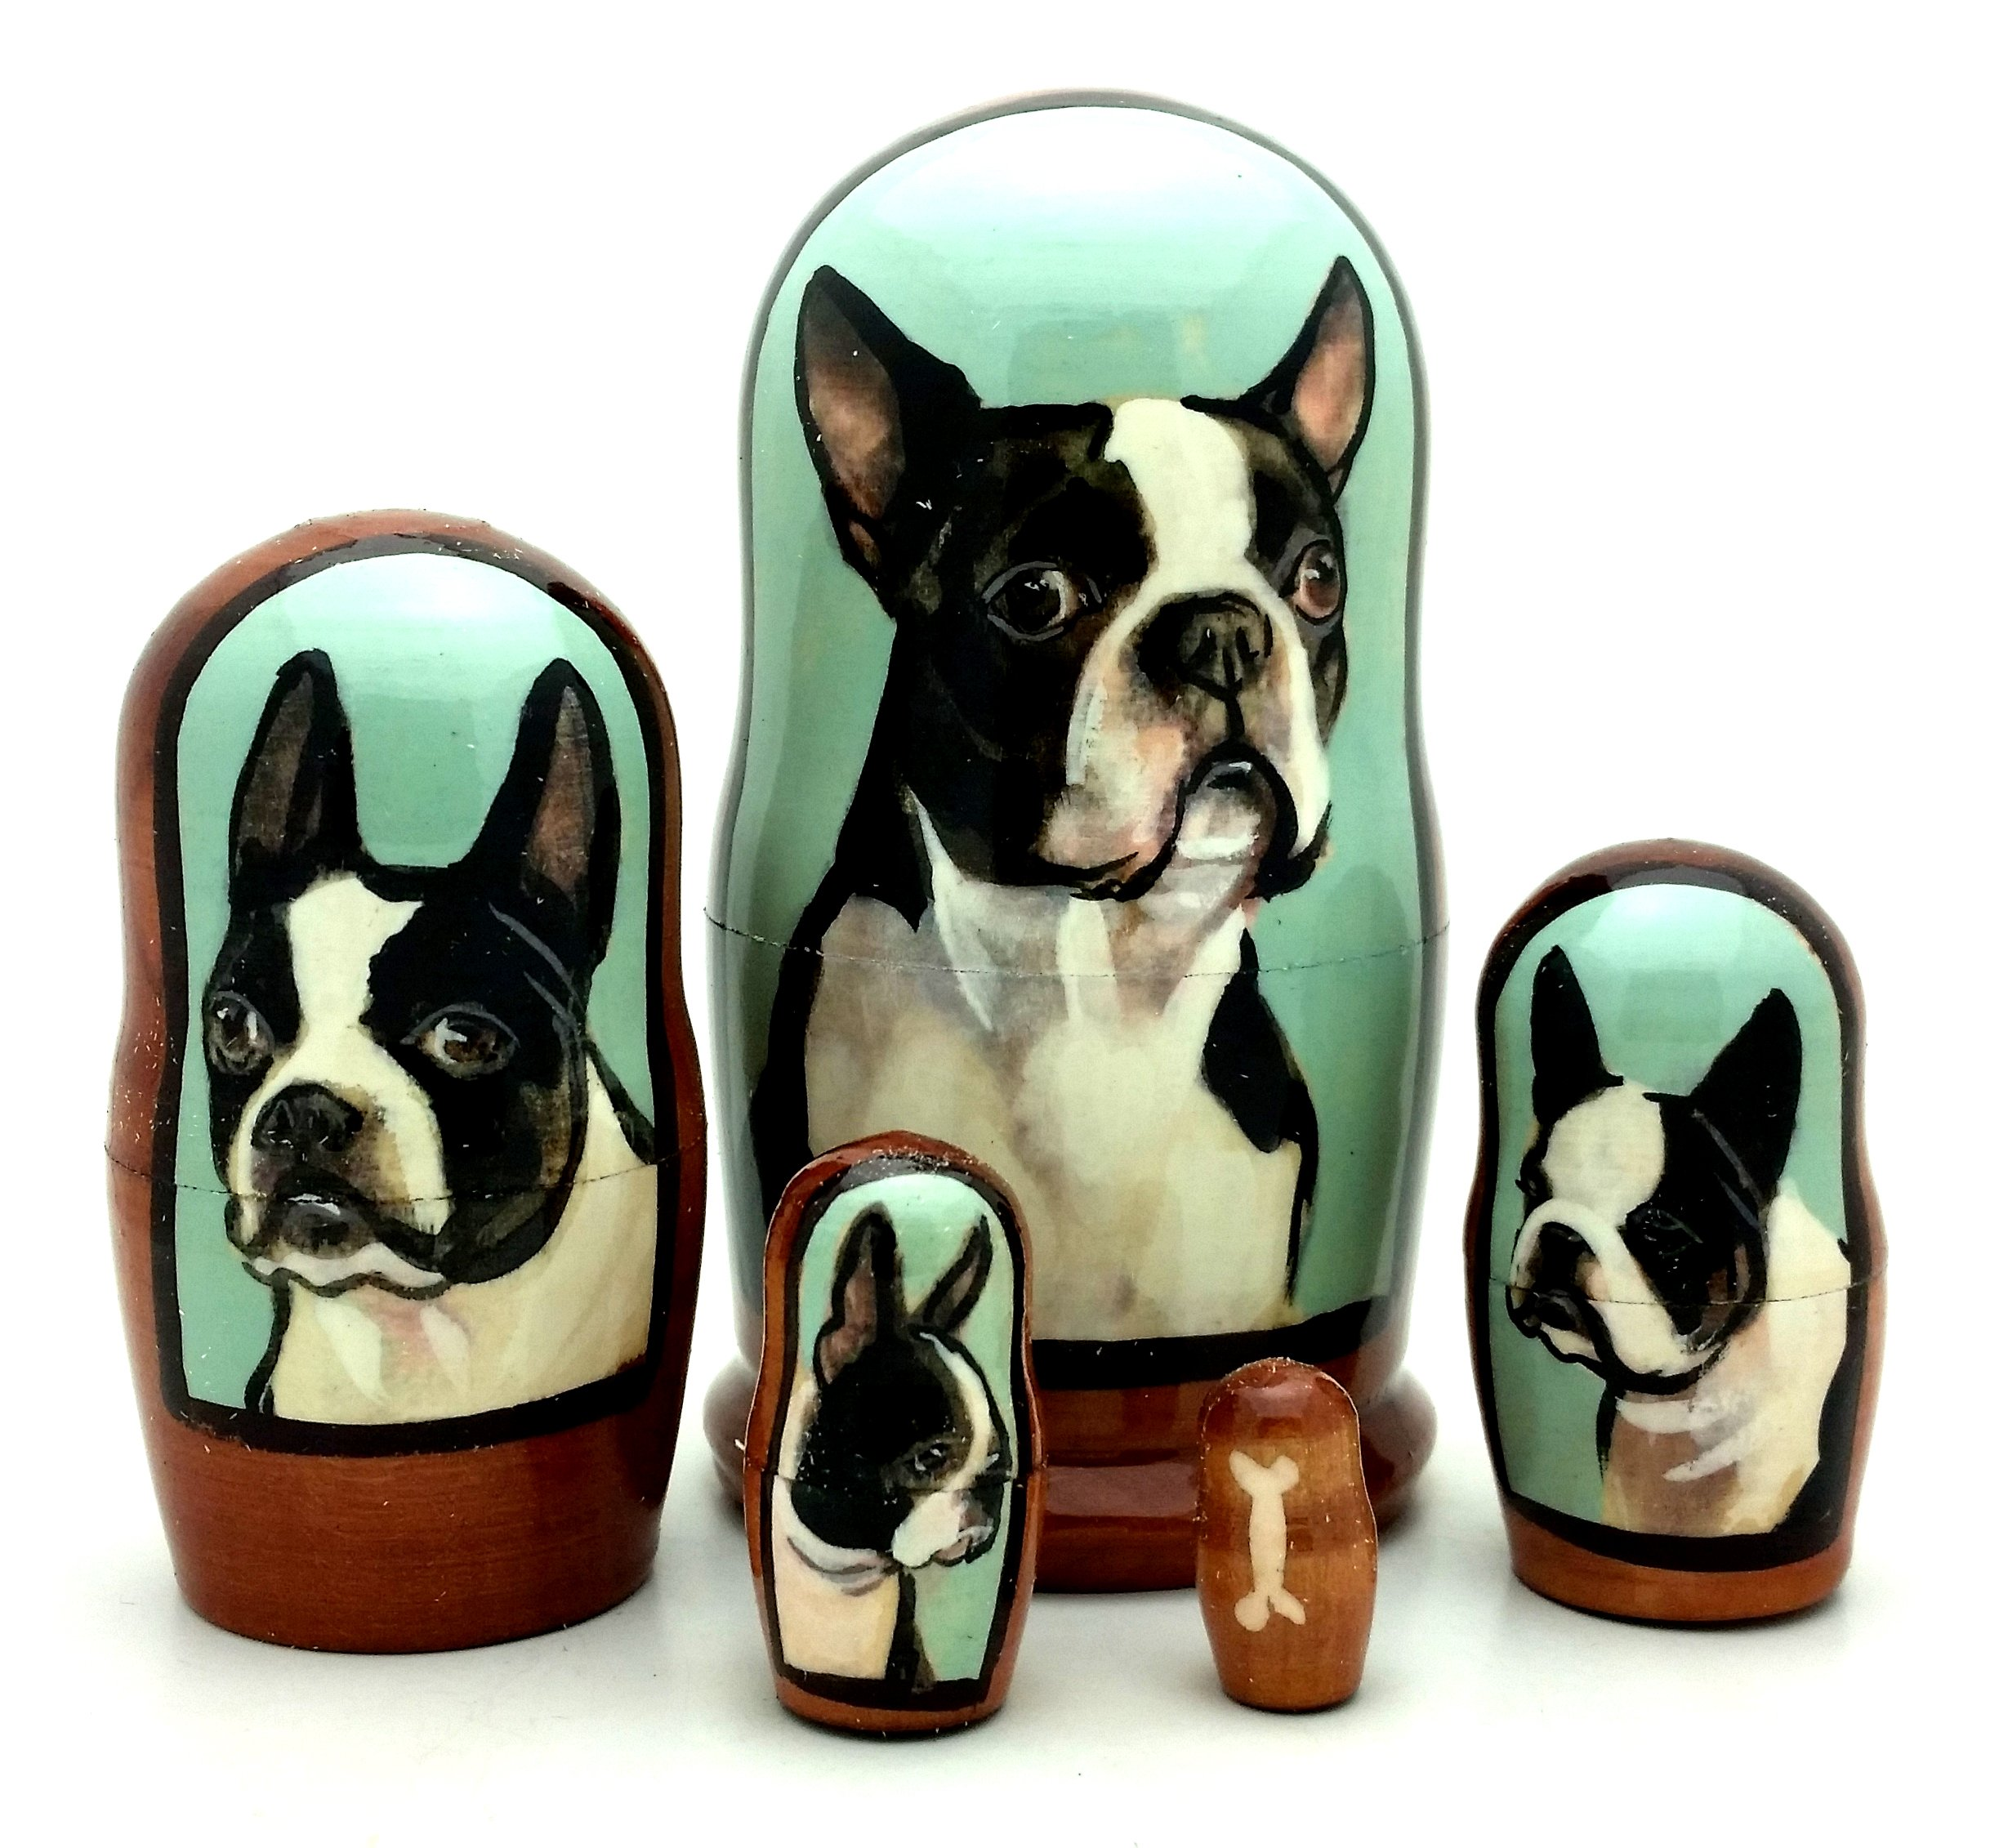 Boston Terrier dog breed nesting dolls Russian Hand made 5 piece matryoshka Set 7''H